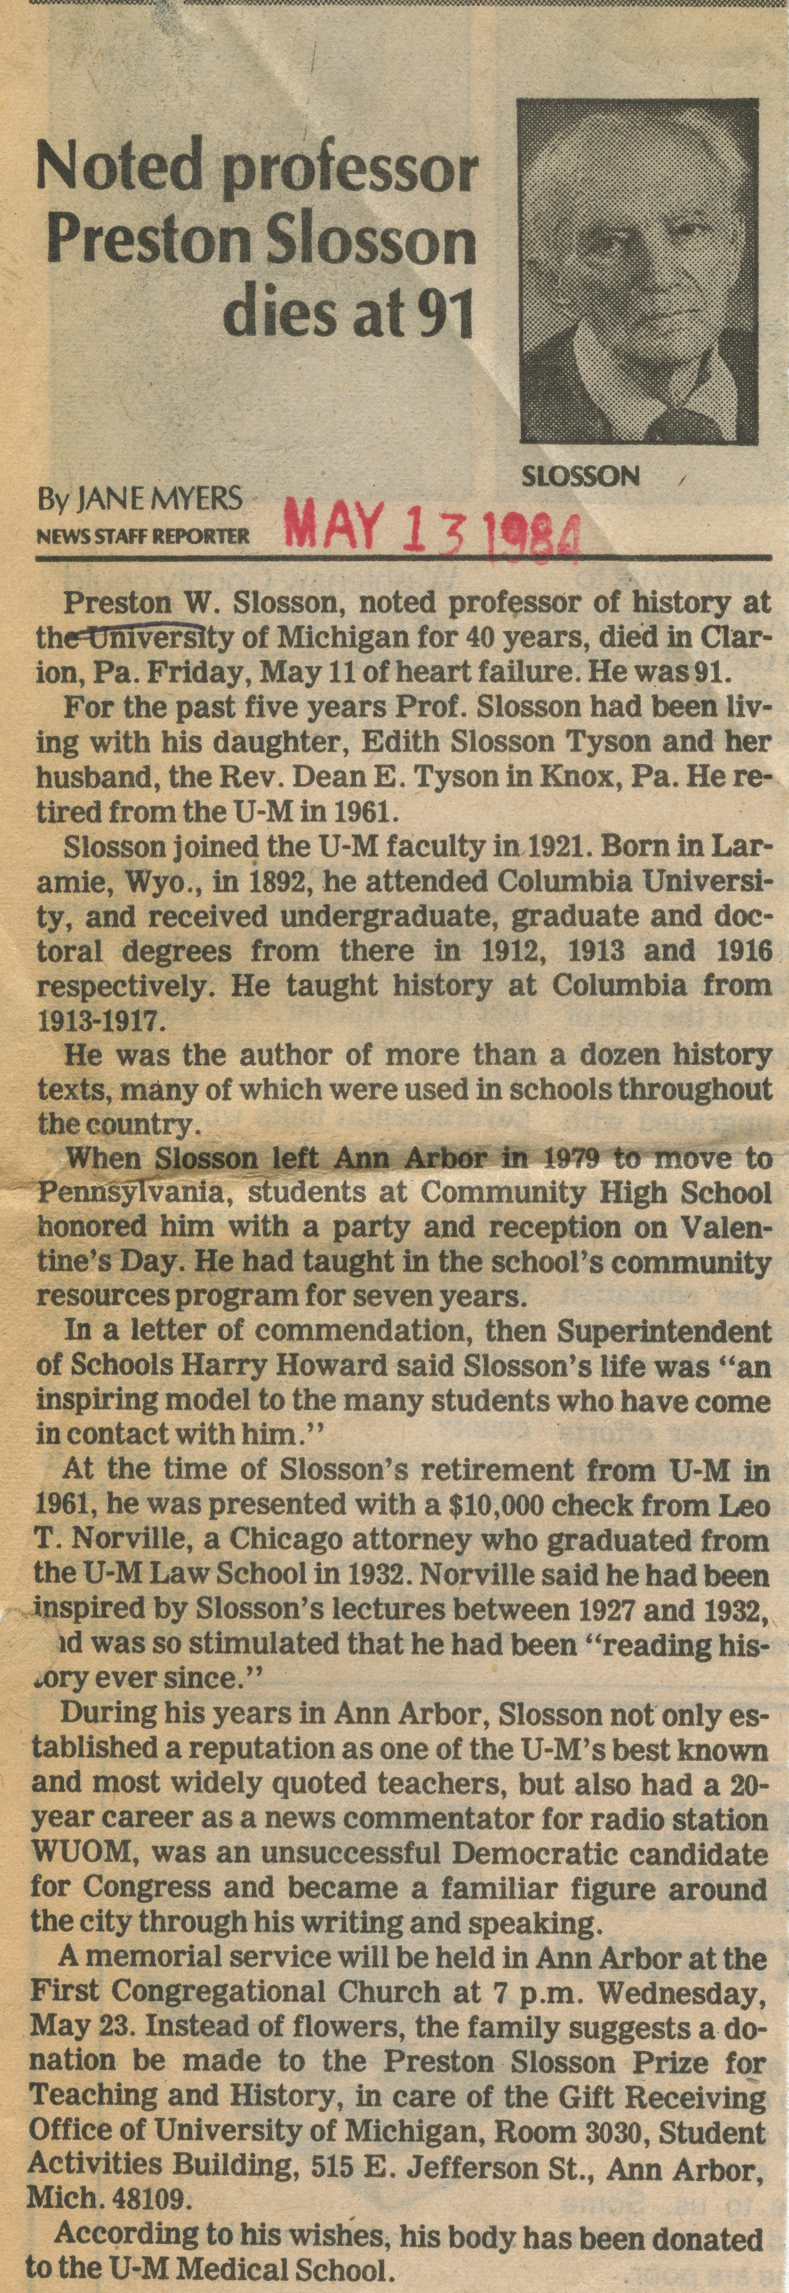 Noted professor Preston Slosson dies at 91 image